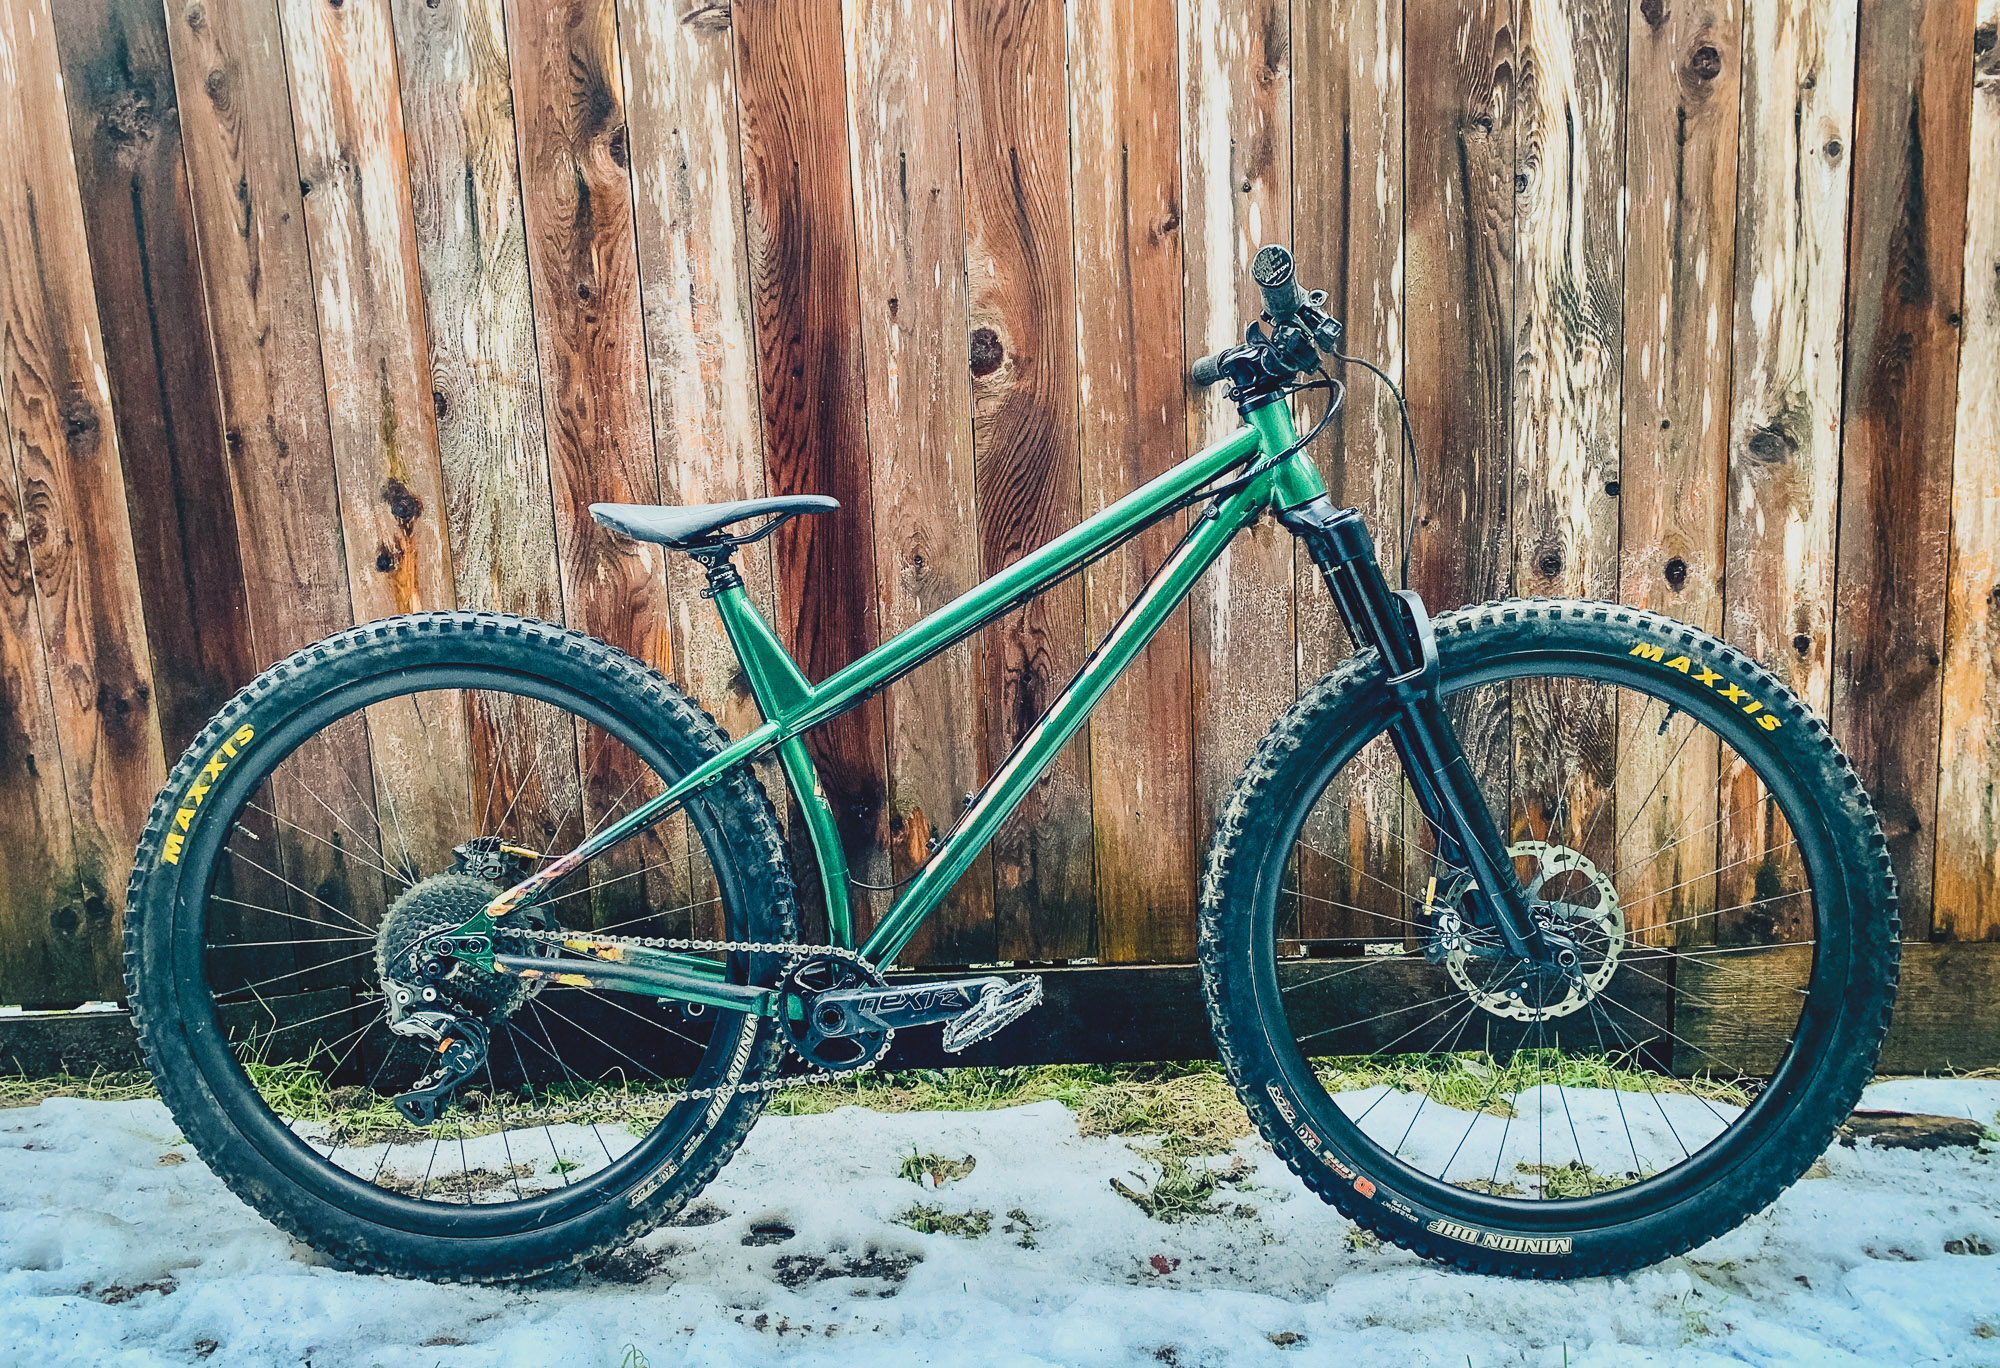 42ffcc32e61 Like Matt, this bike is a brawler. Matt can ride faster than you can on  this hardtail and that ain't no joke. Long high speed days in Squamish  require a ...